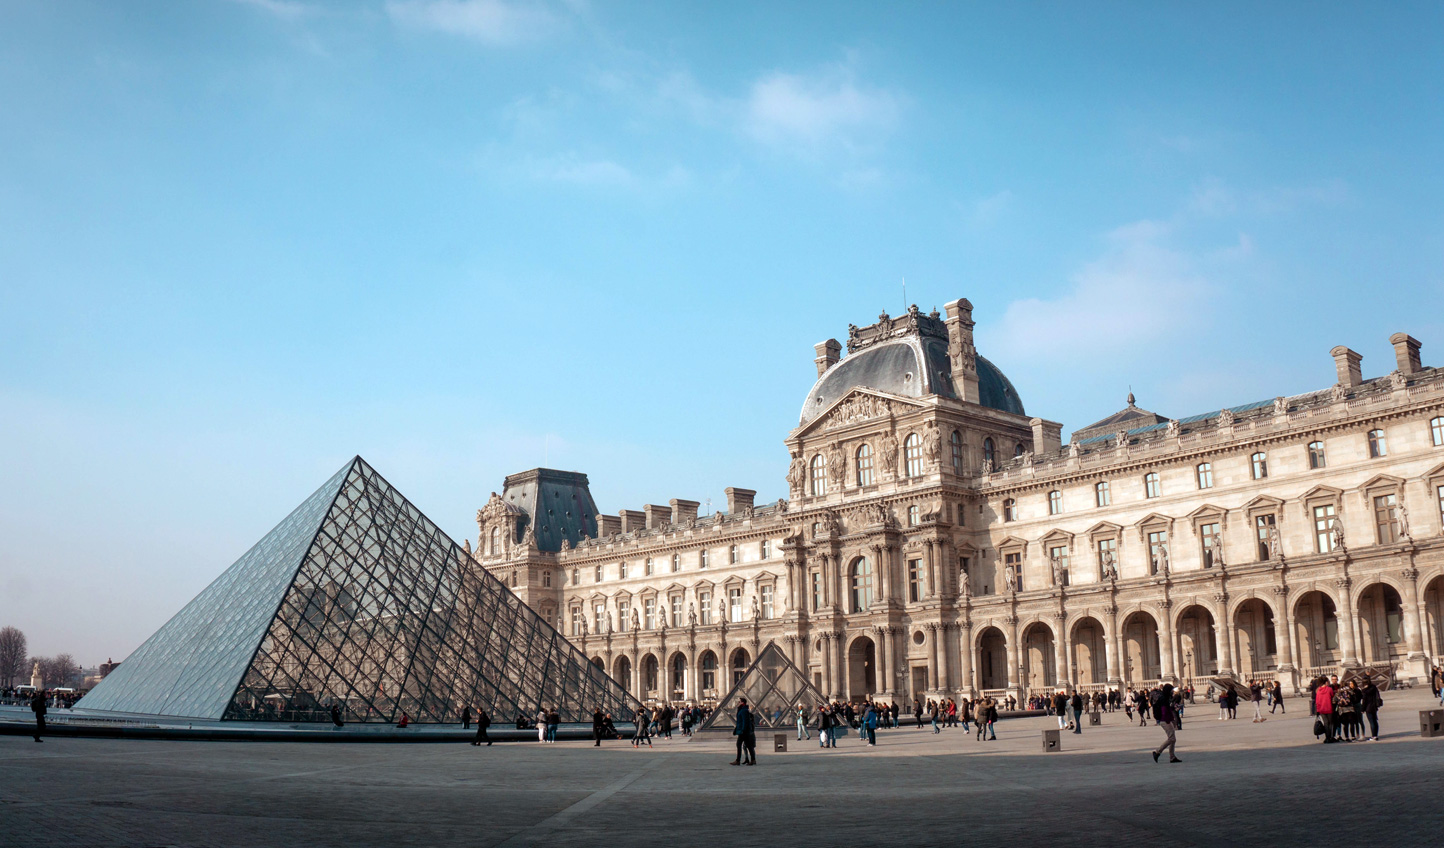 Get a heady dose of European culture on a VIP tour of the Louvre